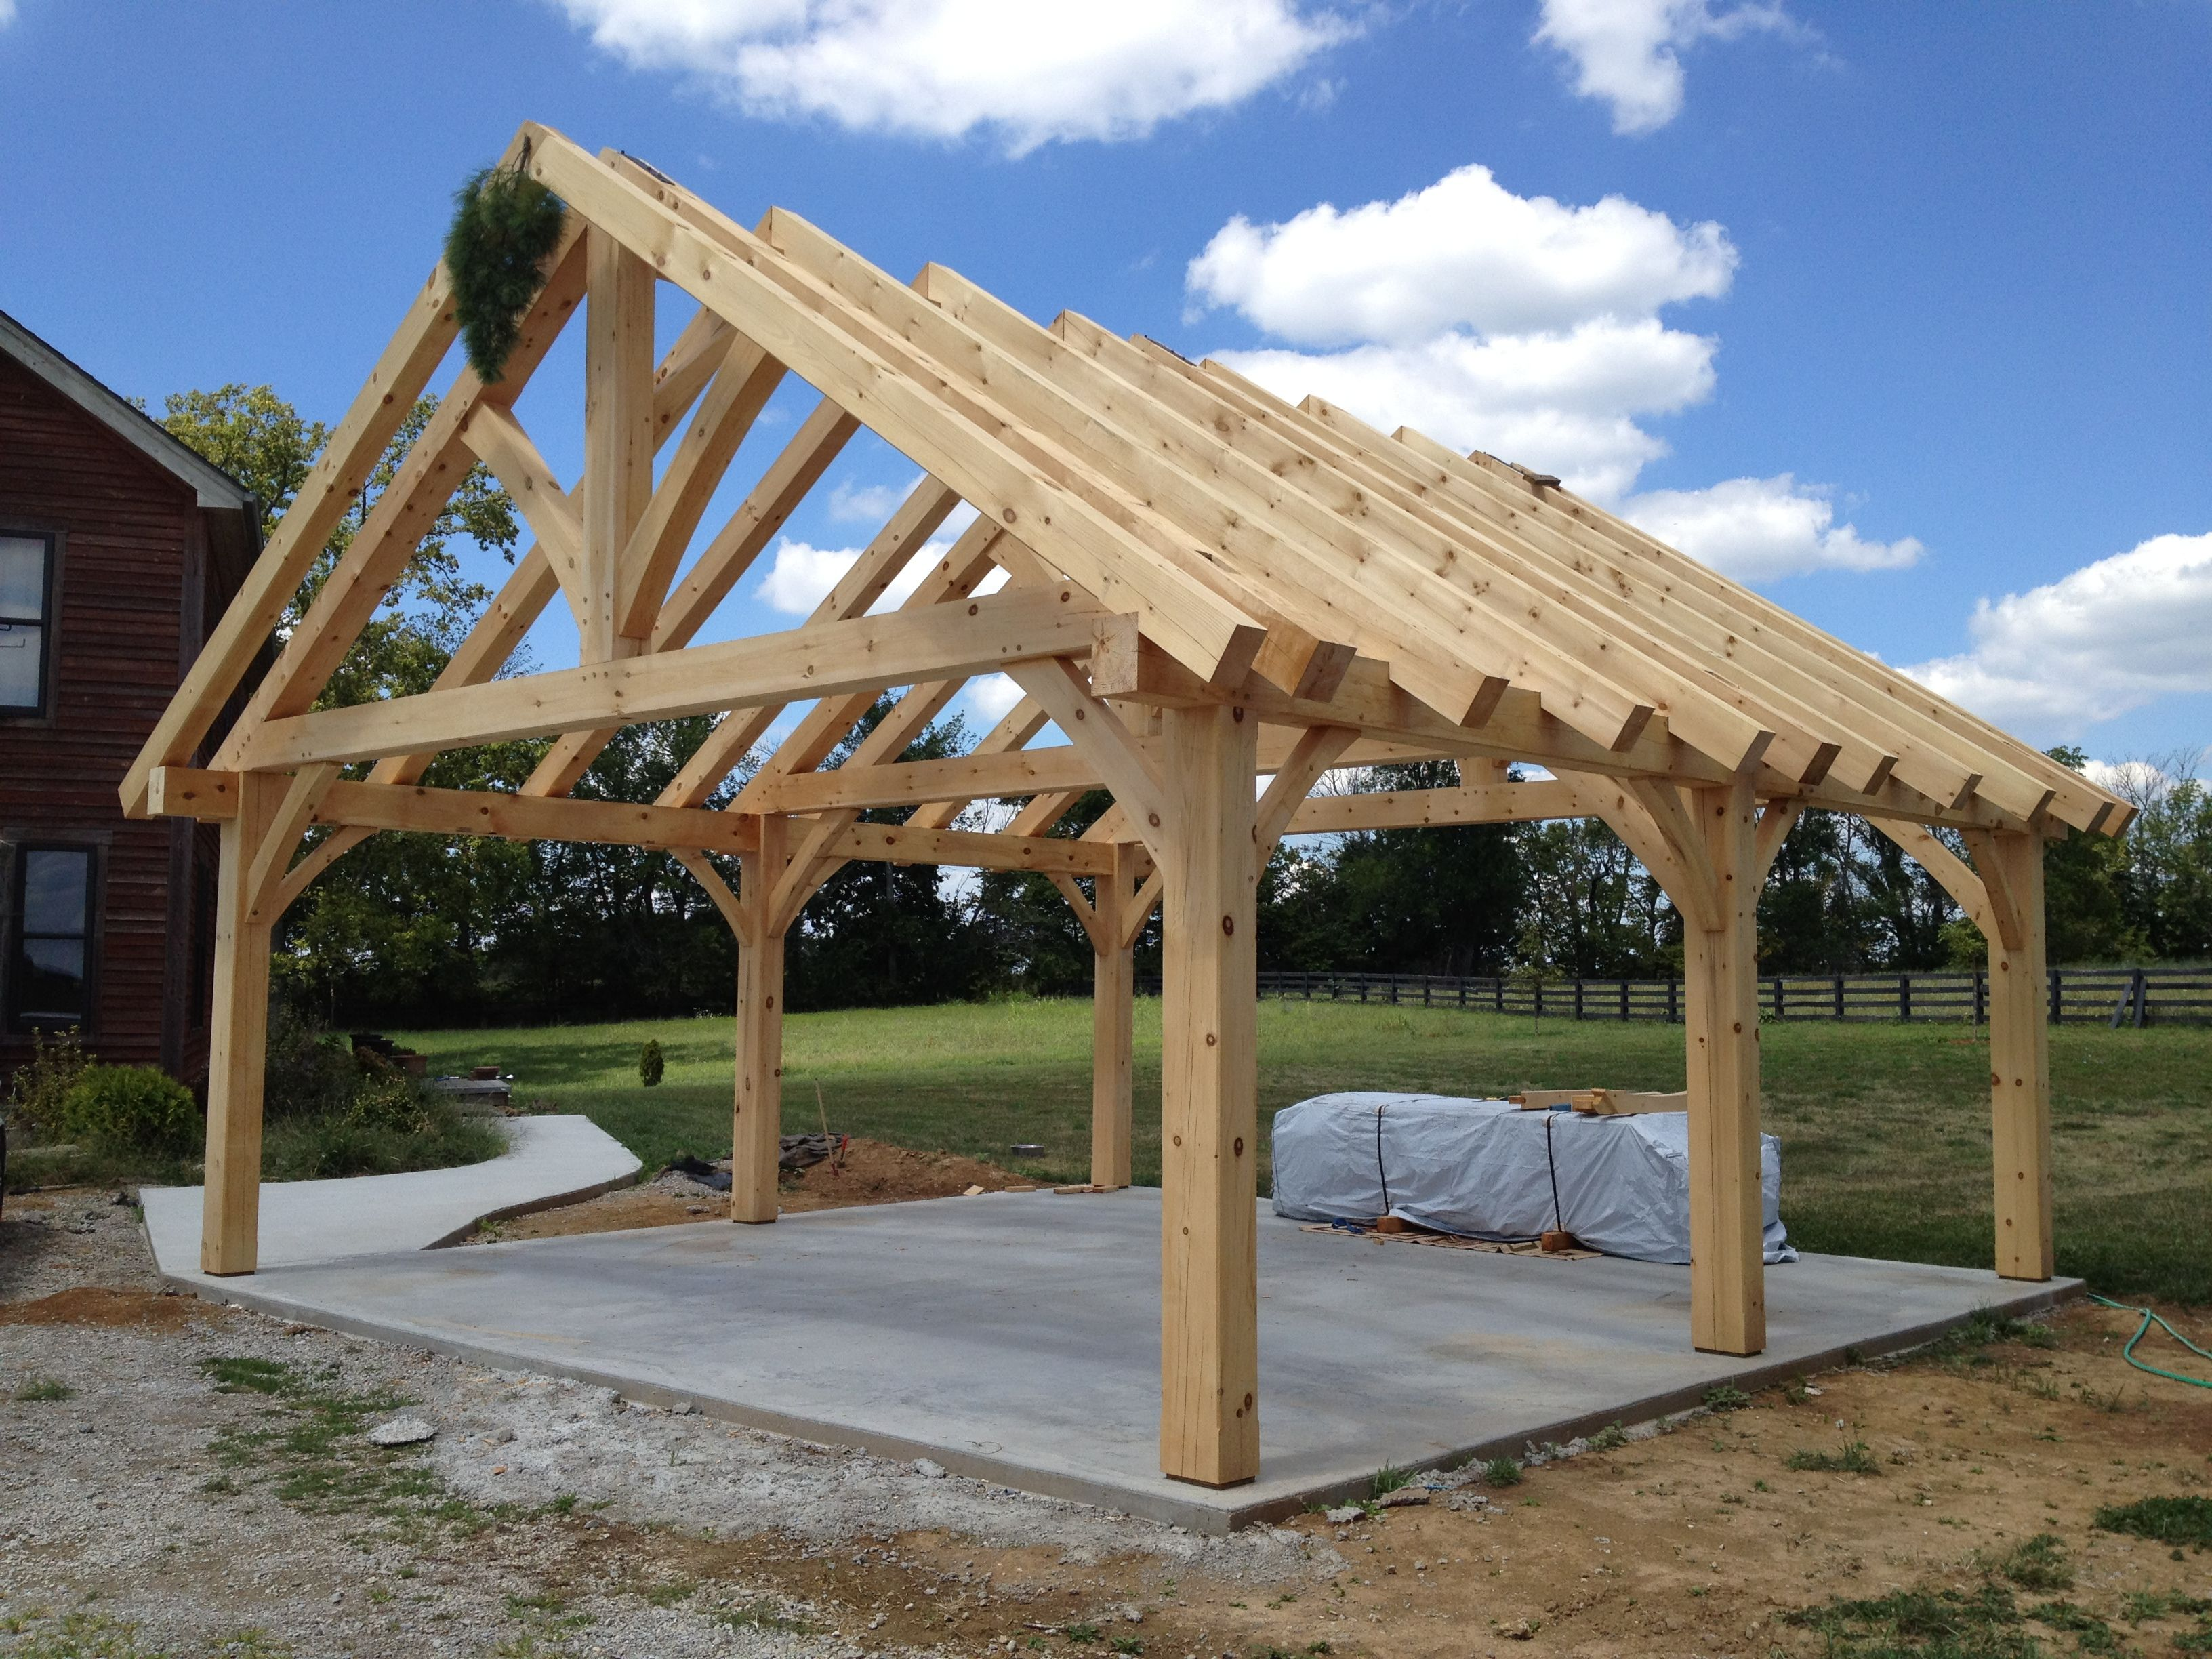 Kingpost Trusses Timberframe Backyard Pavilion Backyard Patio Designs Timber Frame Construction